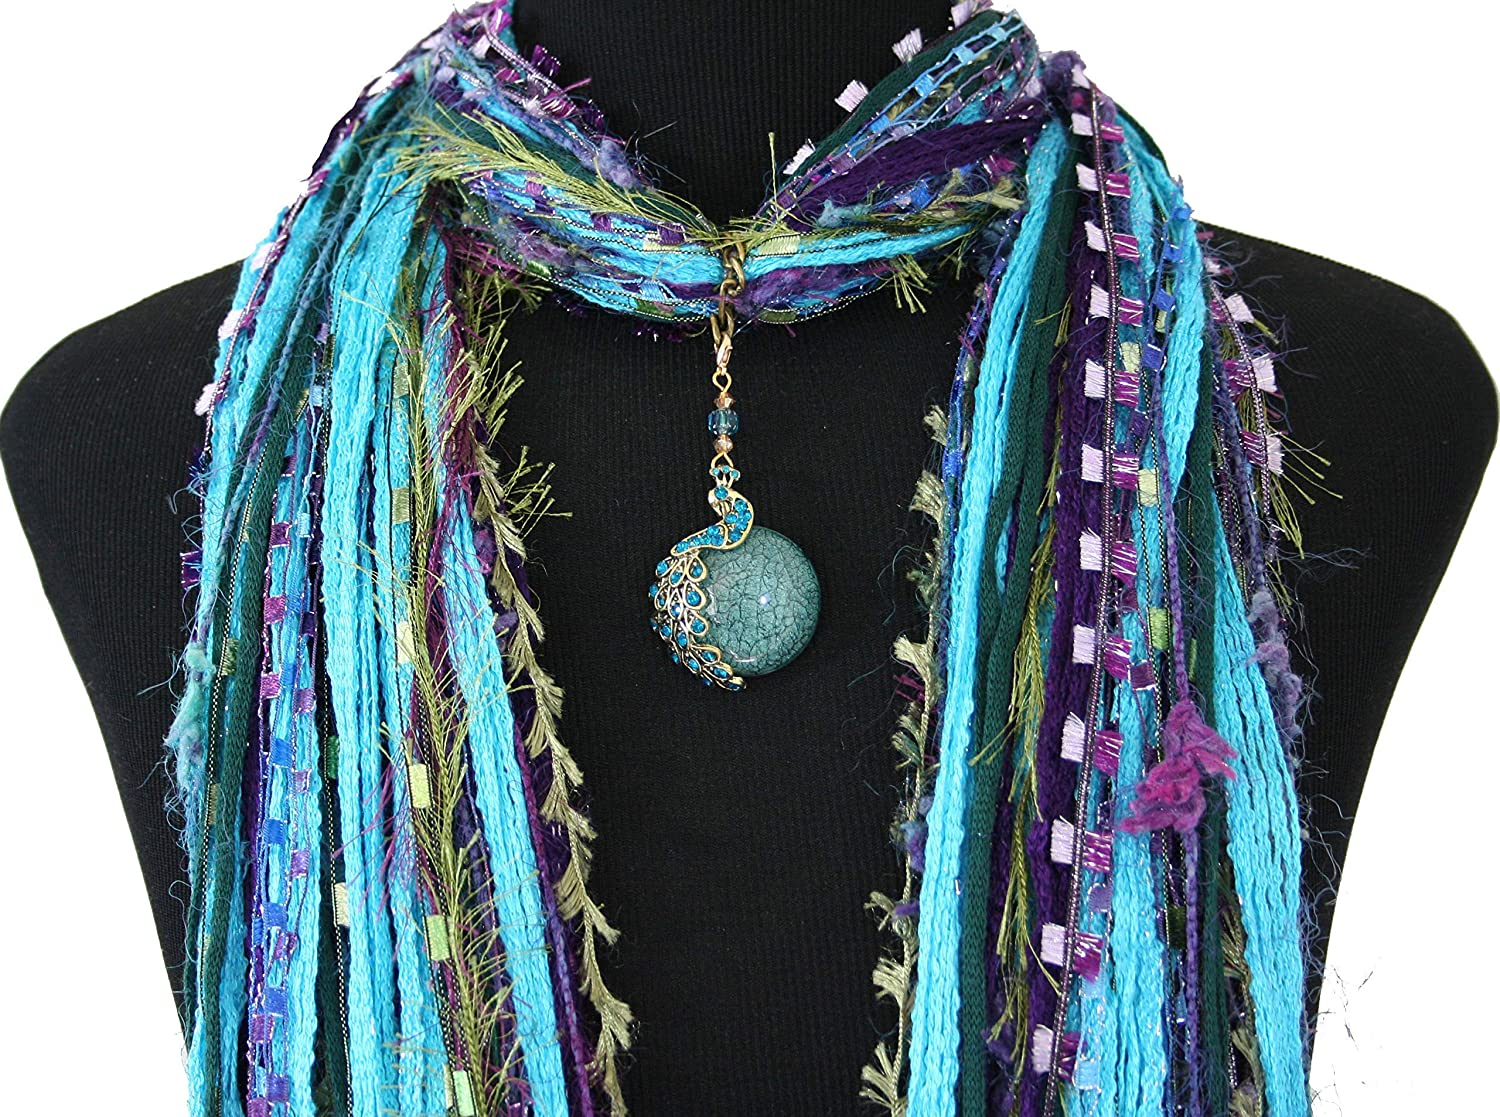 Peacock Max 71% OFF Pendant New Free Shipping Necklace Scarf - Color Turquoise Purple Green